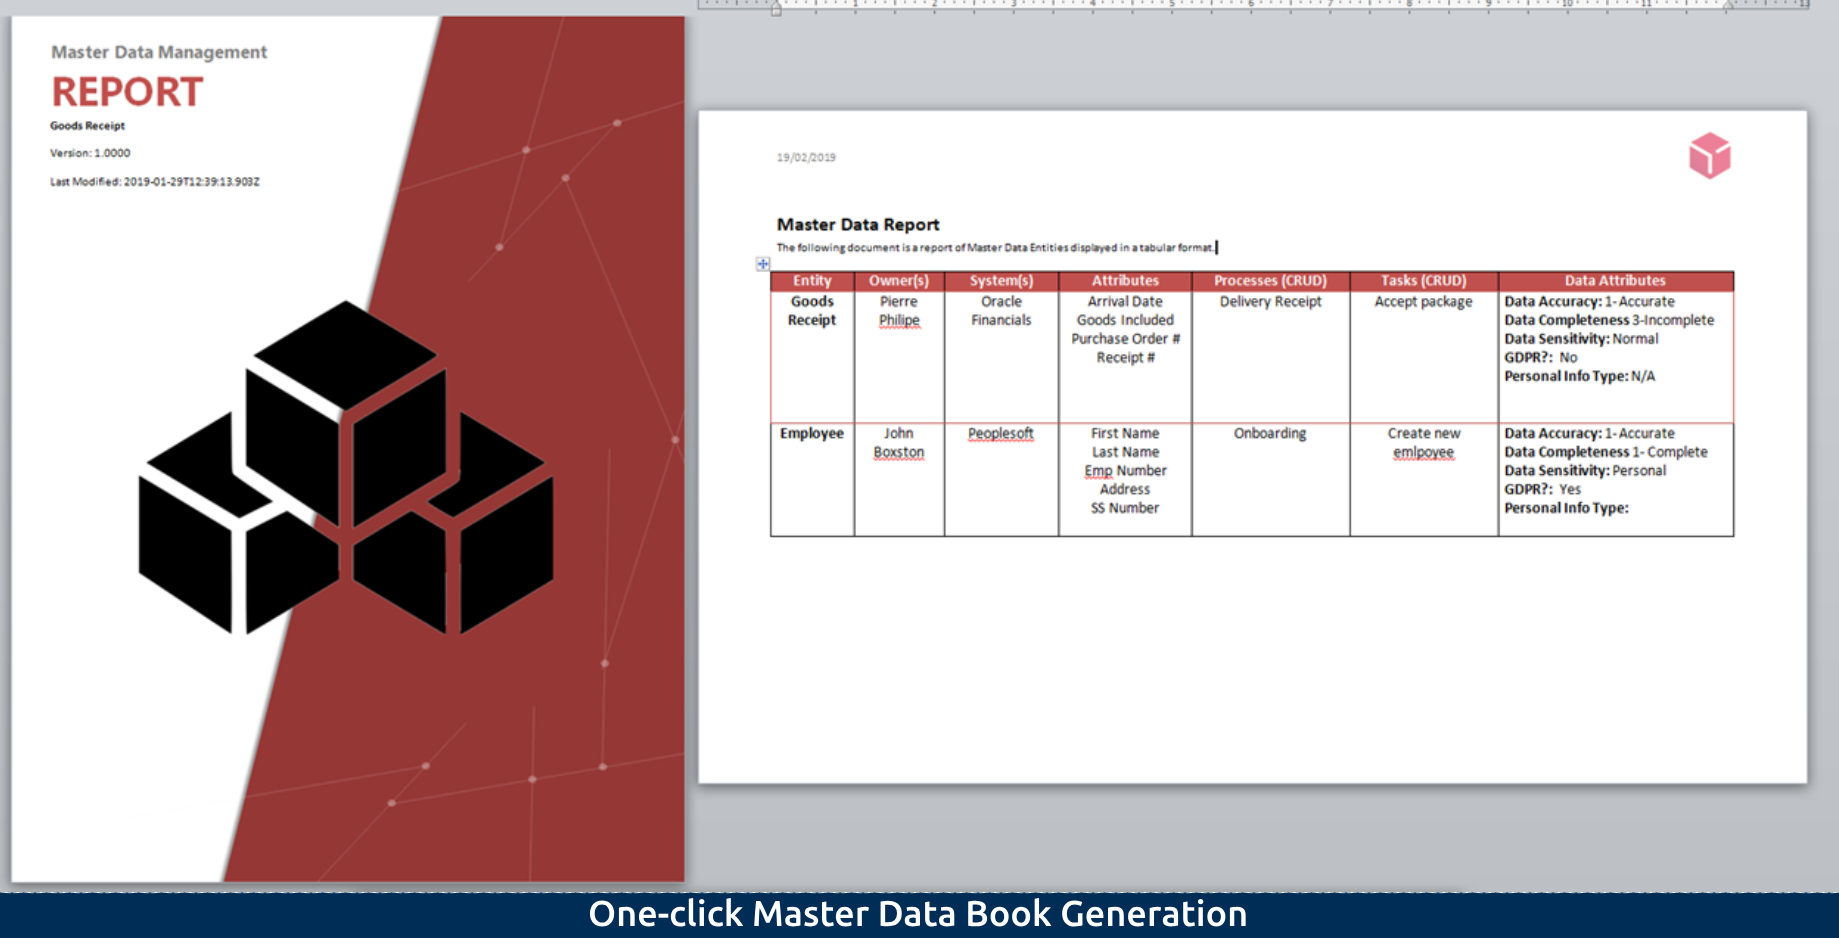 5-2 One-click Master Data Book Generation